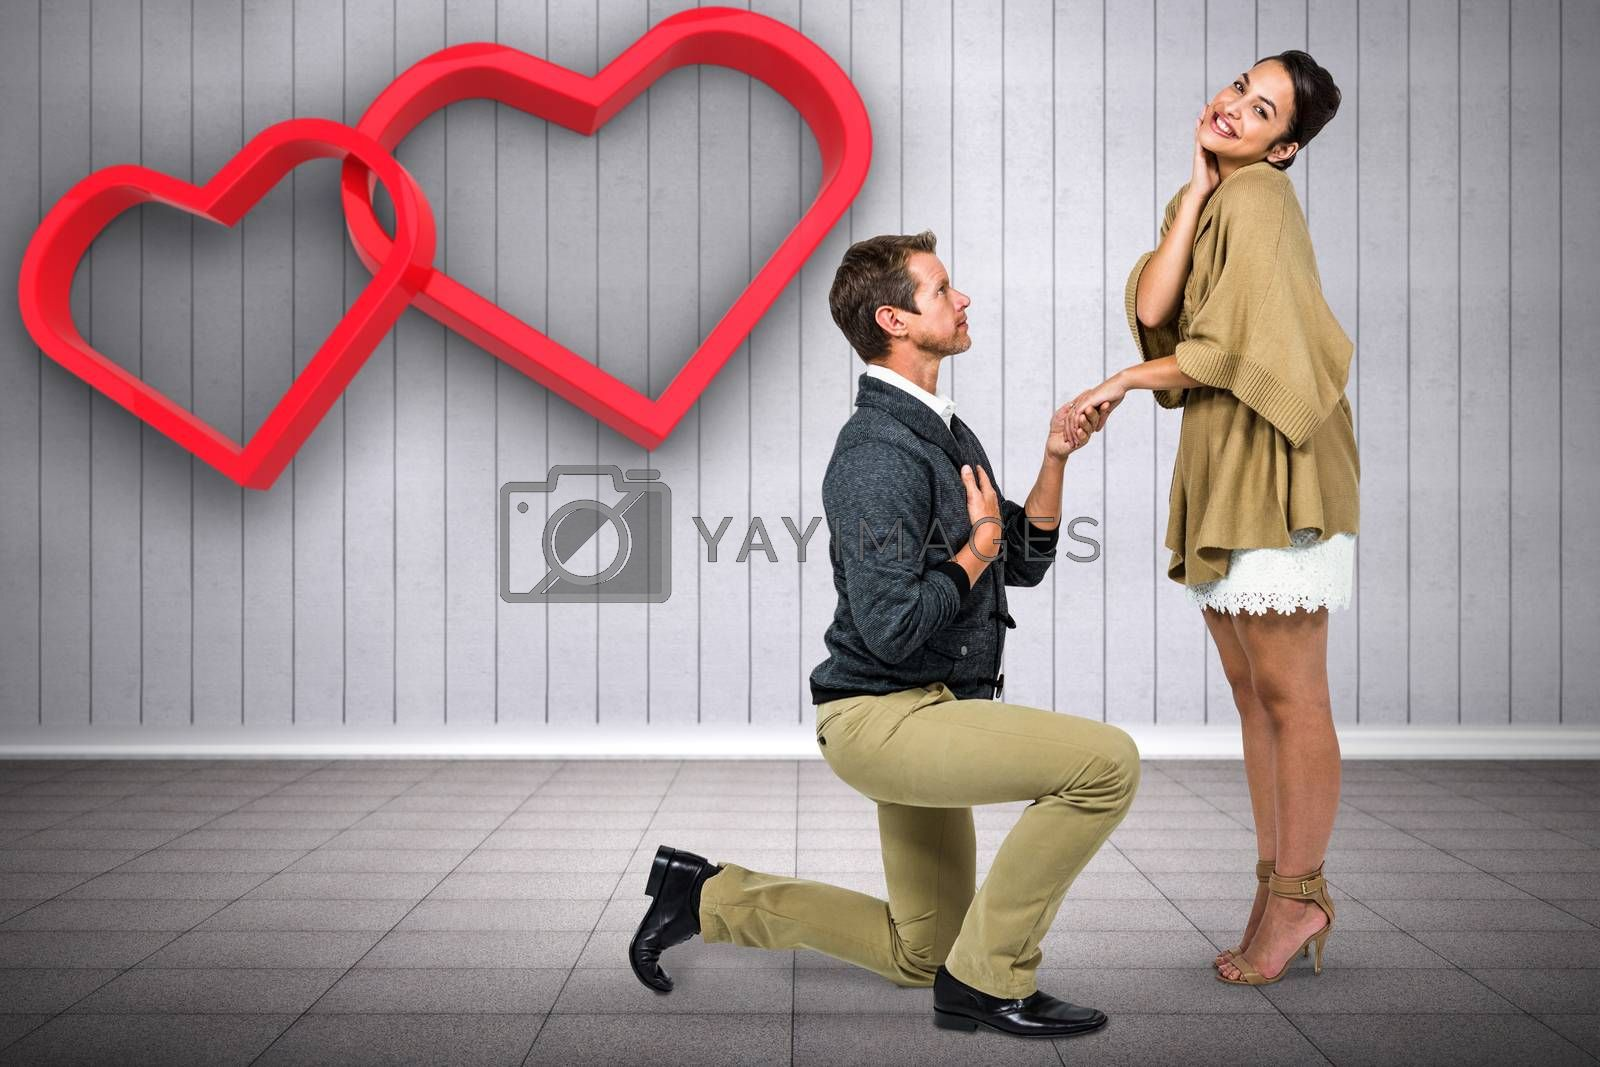 Composite image of man proposing woman while kneeling by Wavebreakmedia